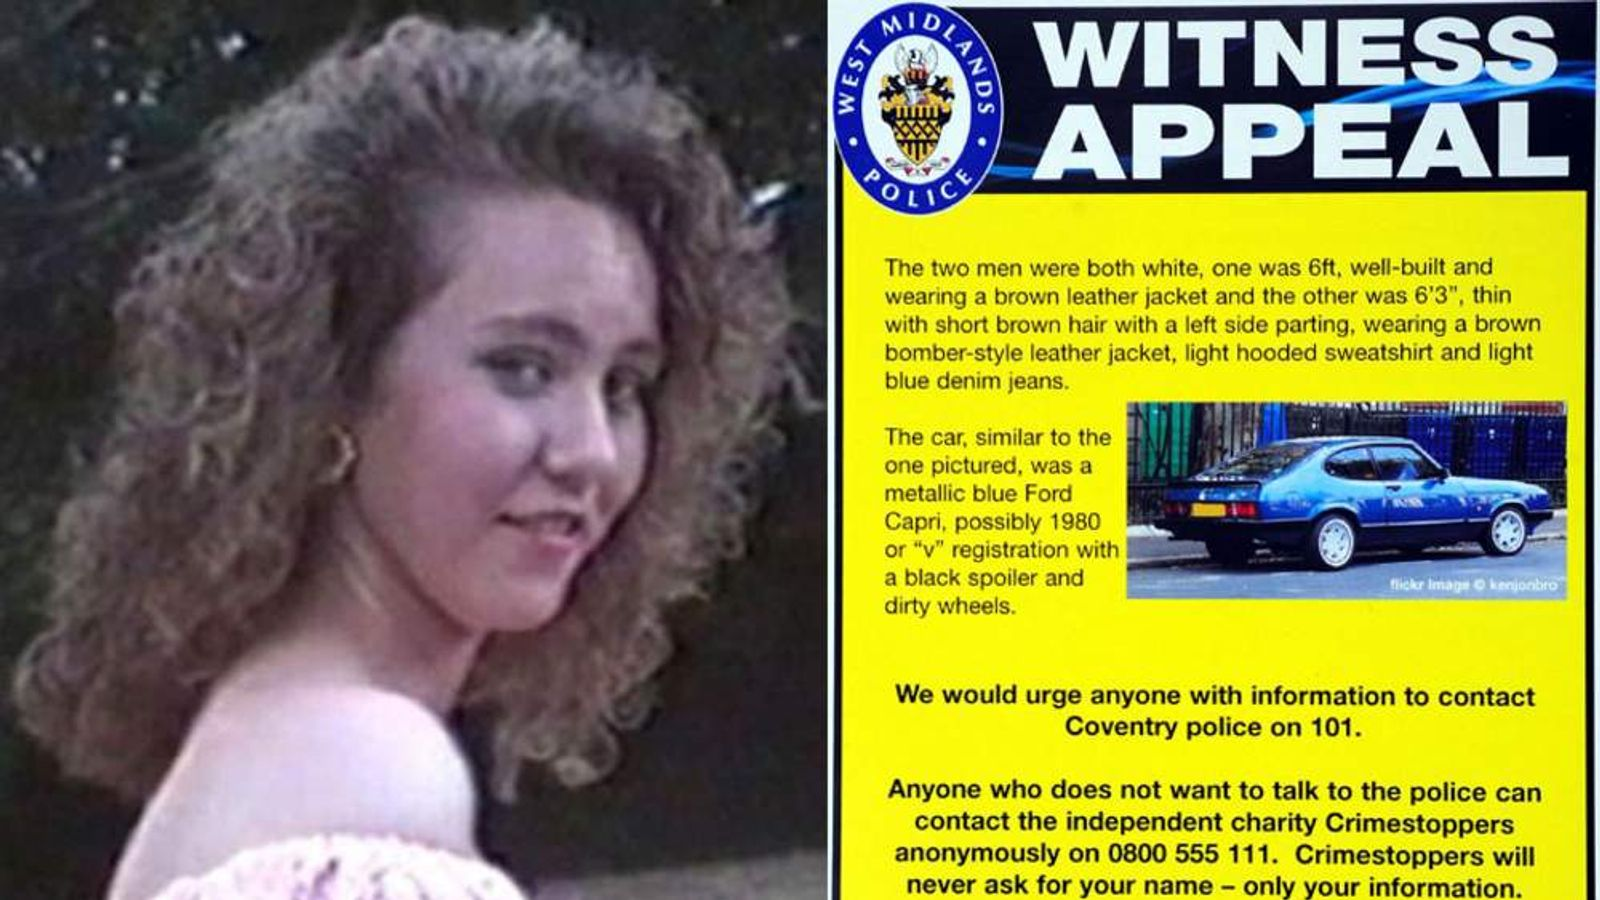 Nicola Payne went missing in December 1991